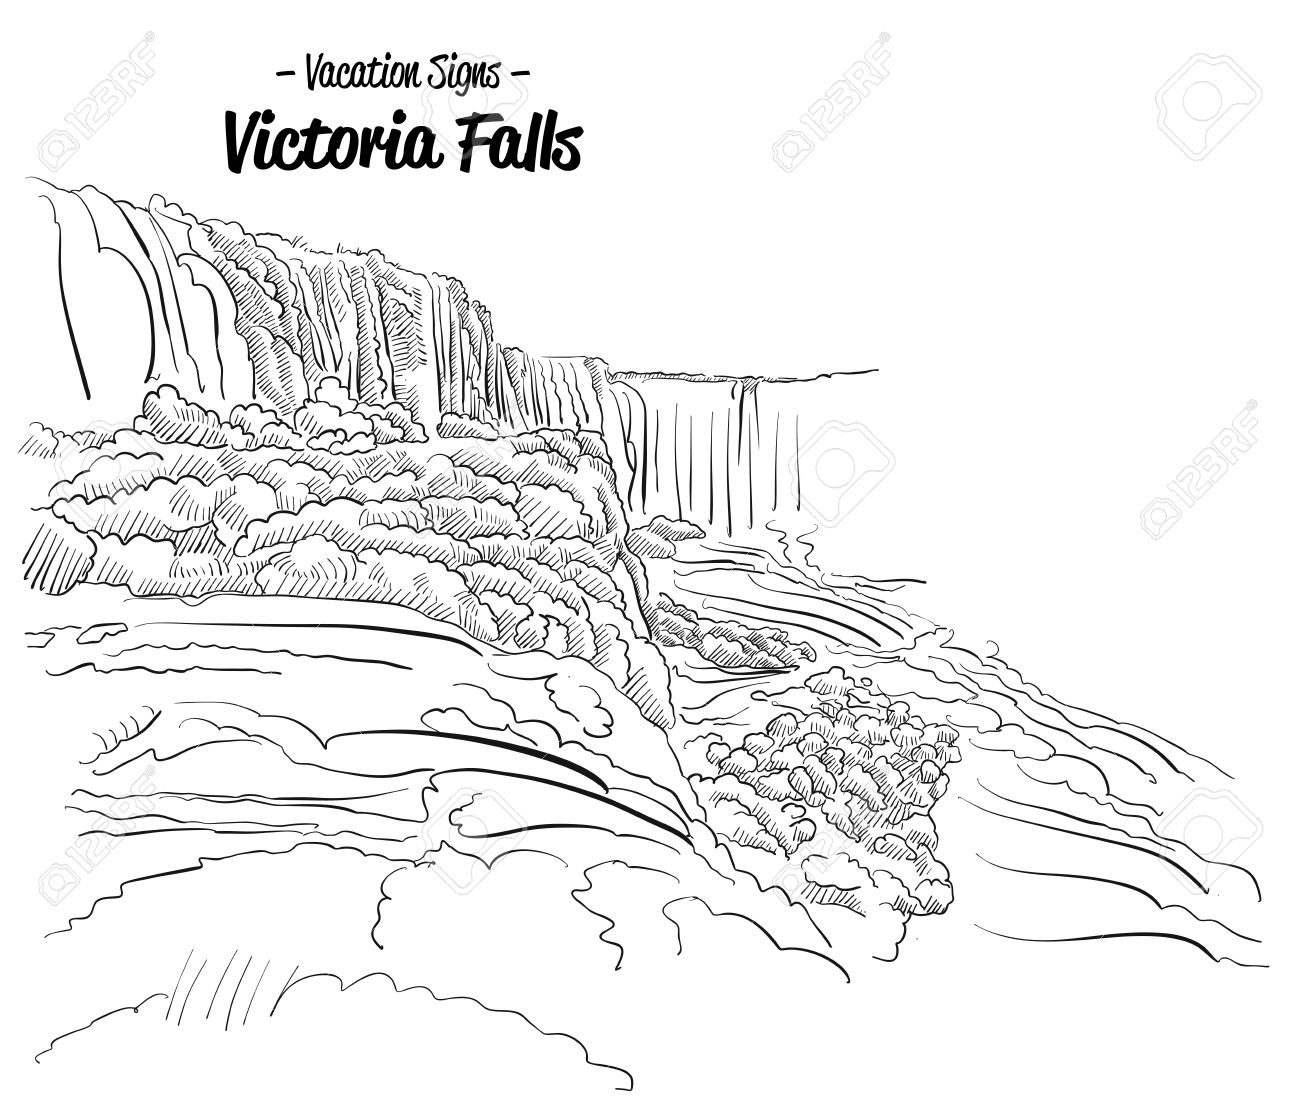 Victoria Falls coloring #10, Download drawings